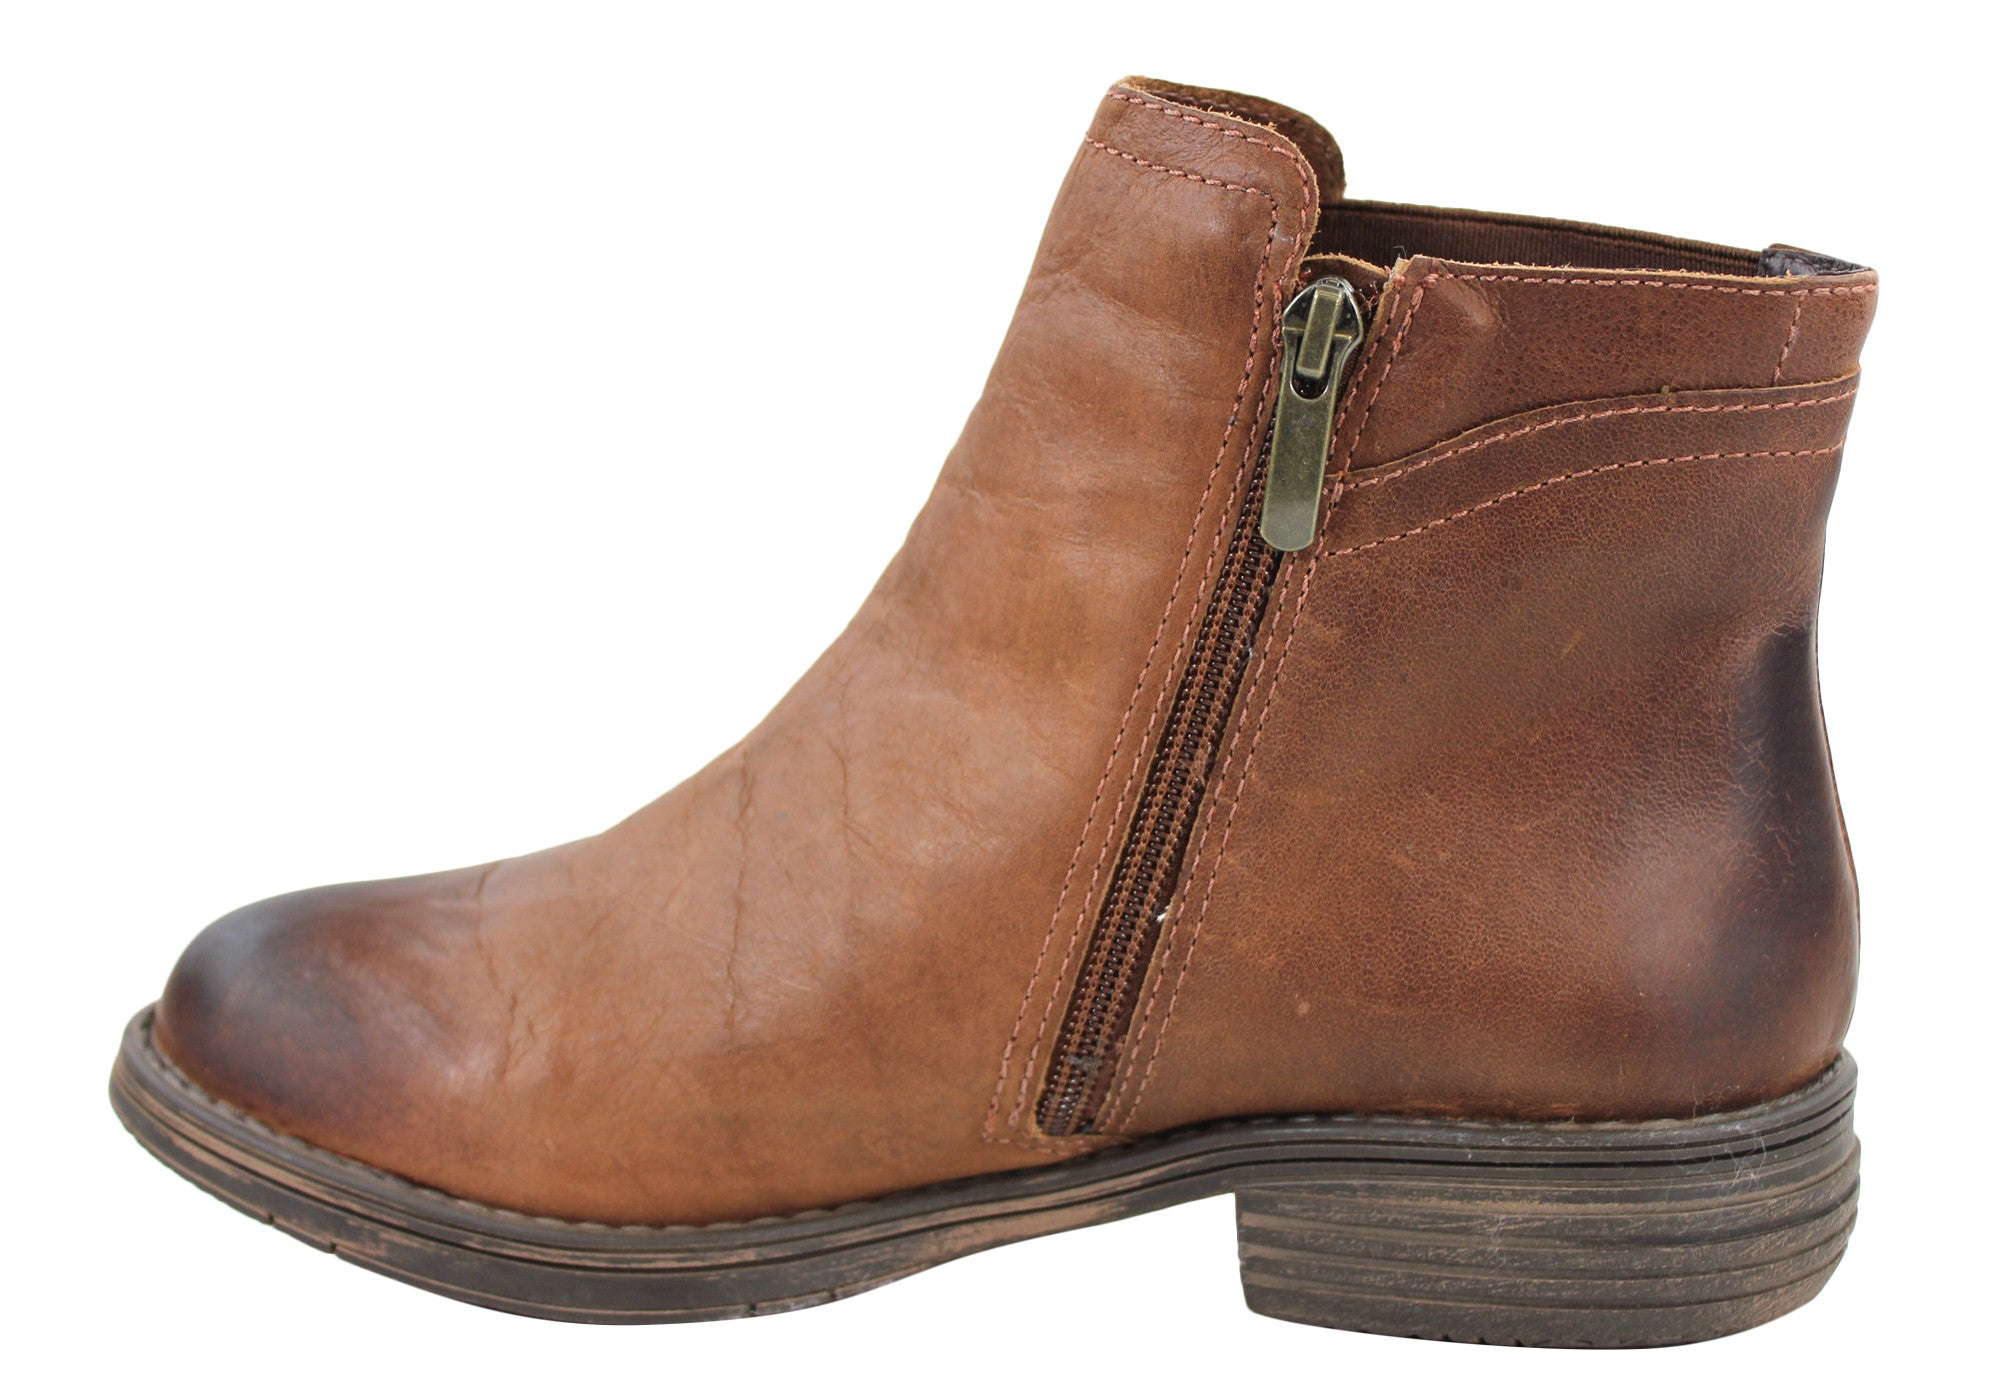 Gino Ventori Sid Womens Ankle Boots Made In Brazil